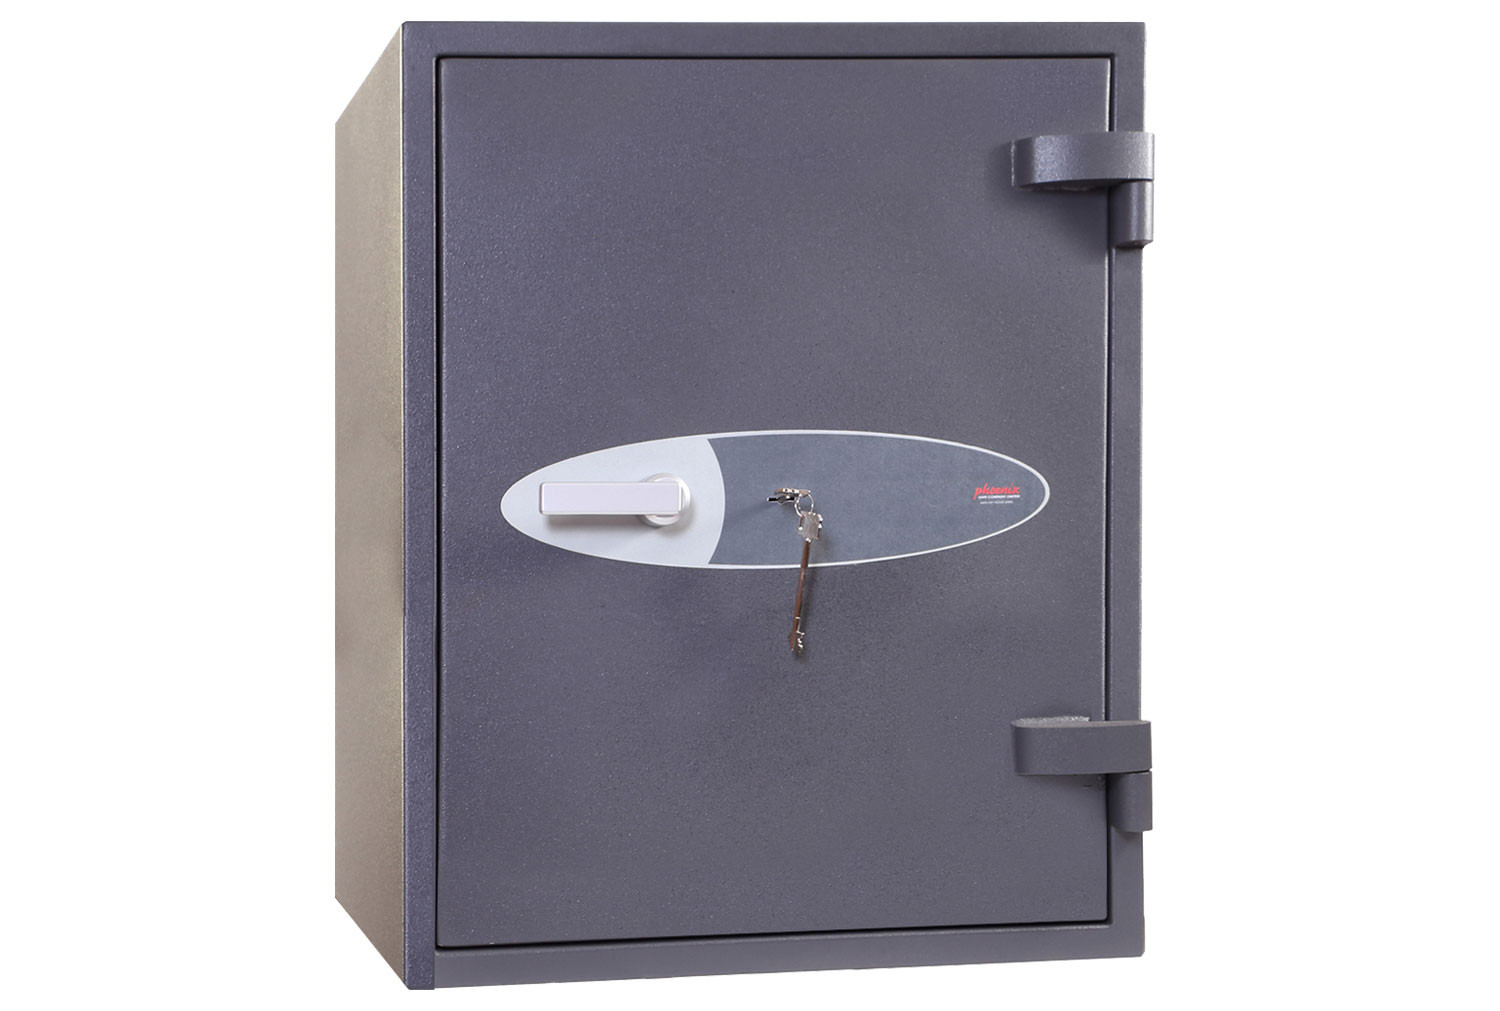 Phoenix Neptune HS1054K High Security Safe With Key Lock (184ltrs)